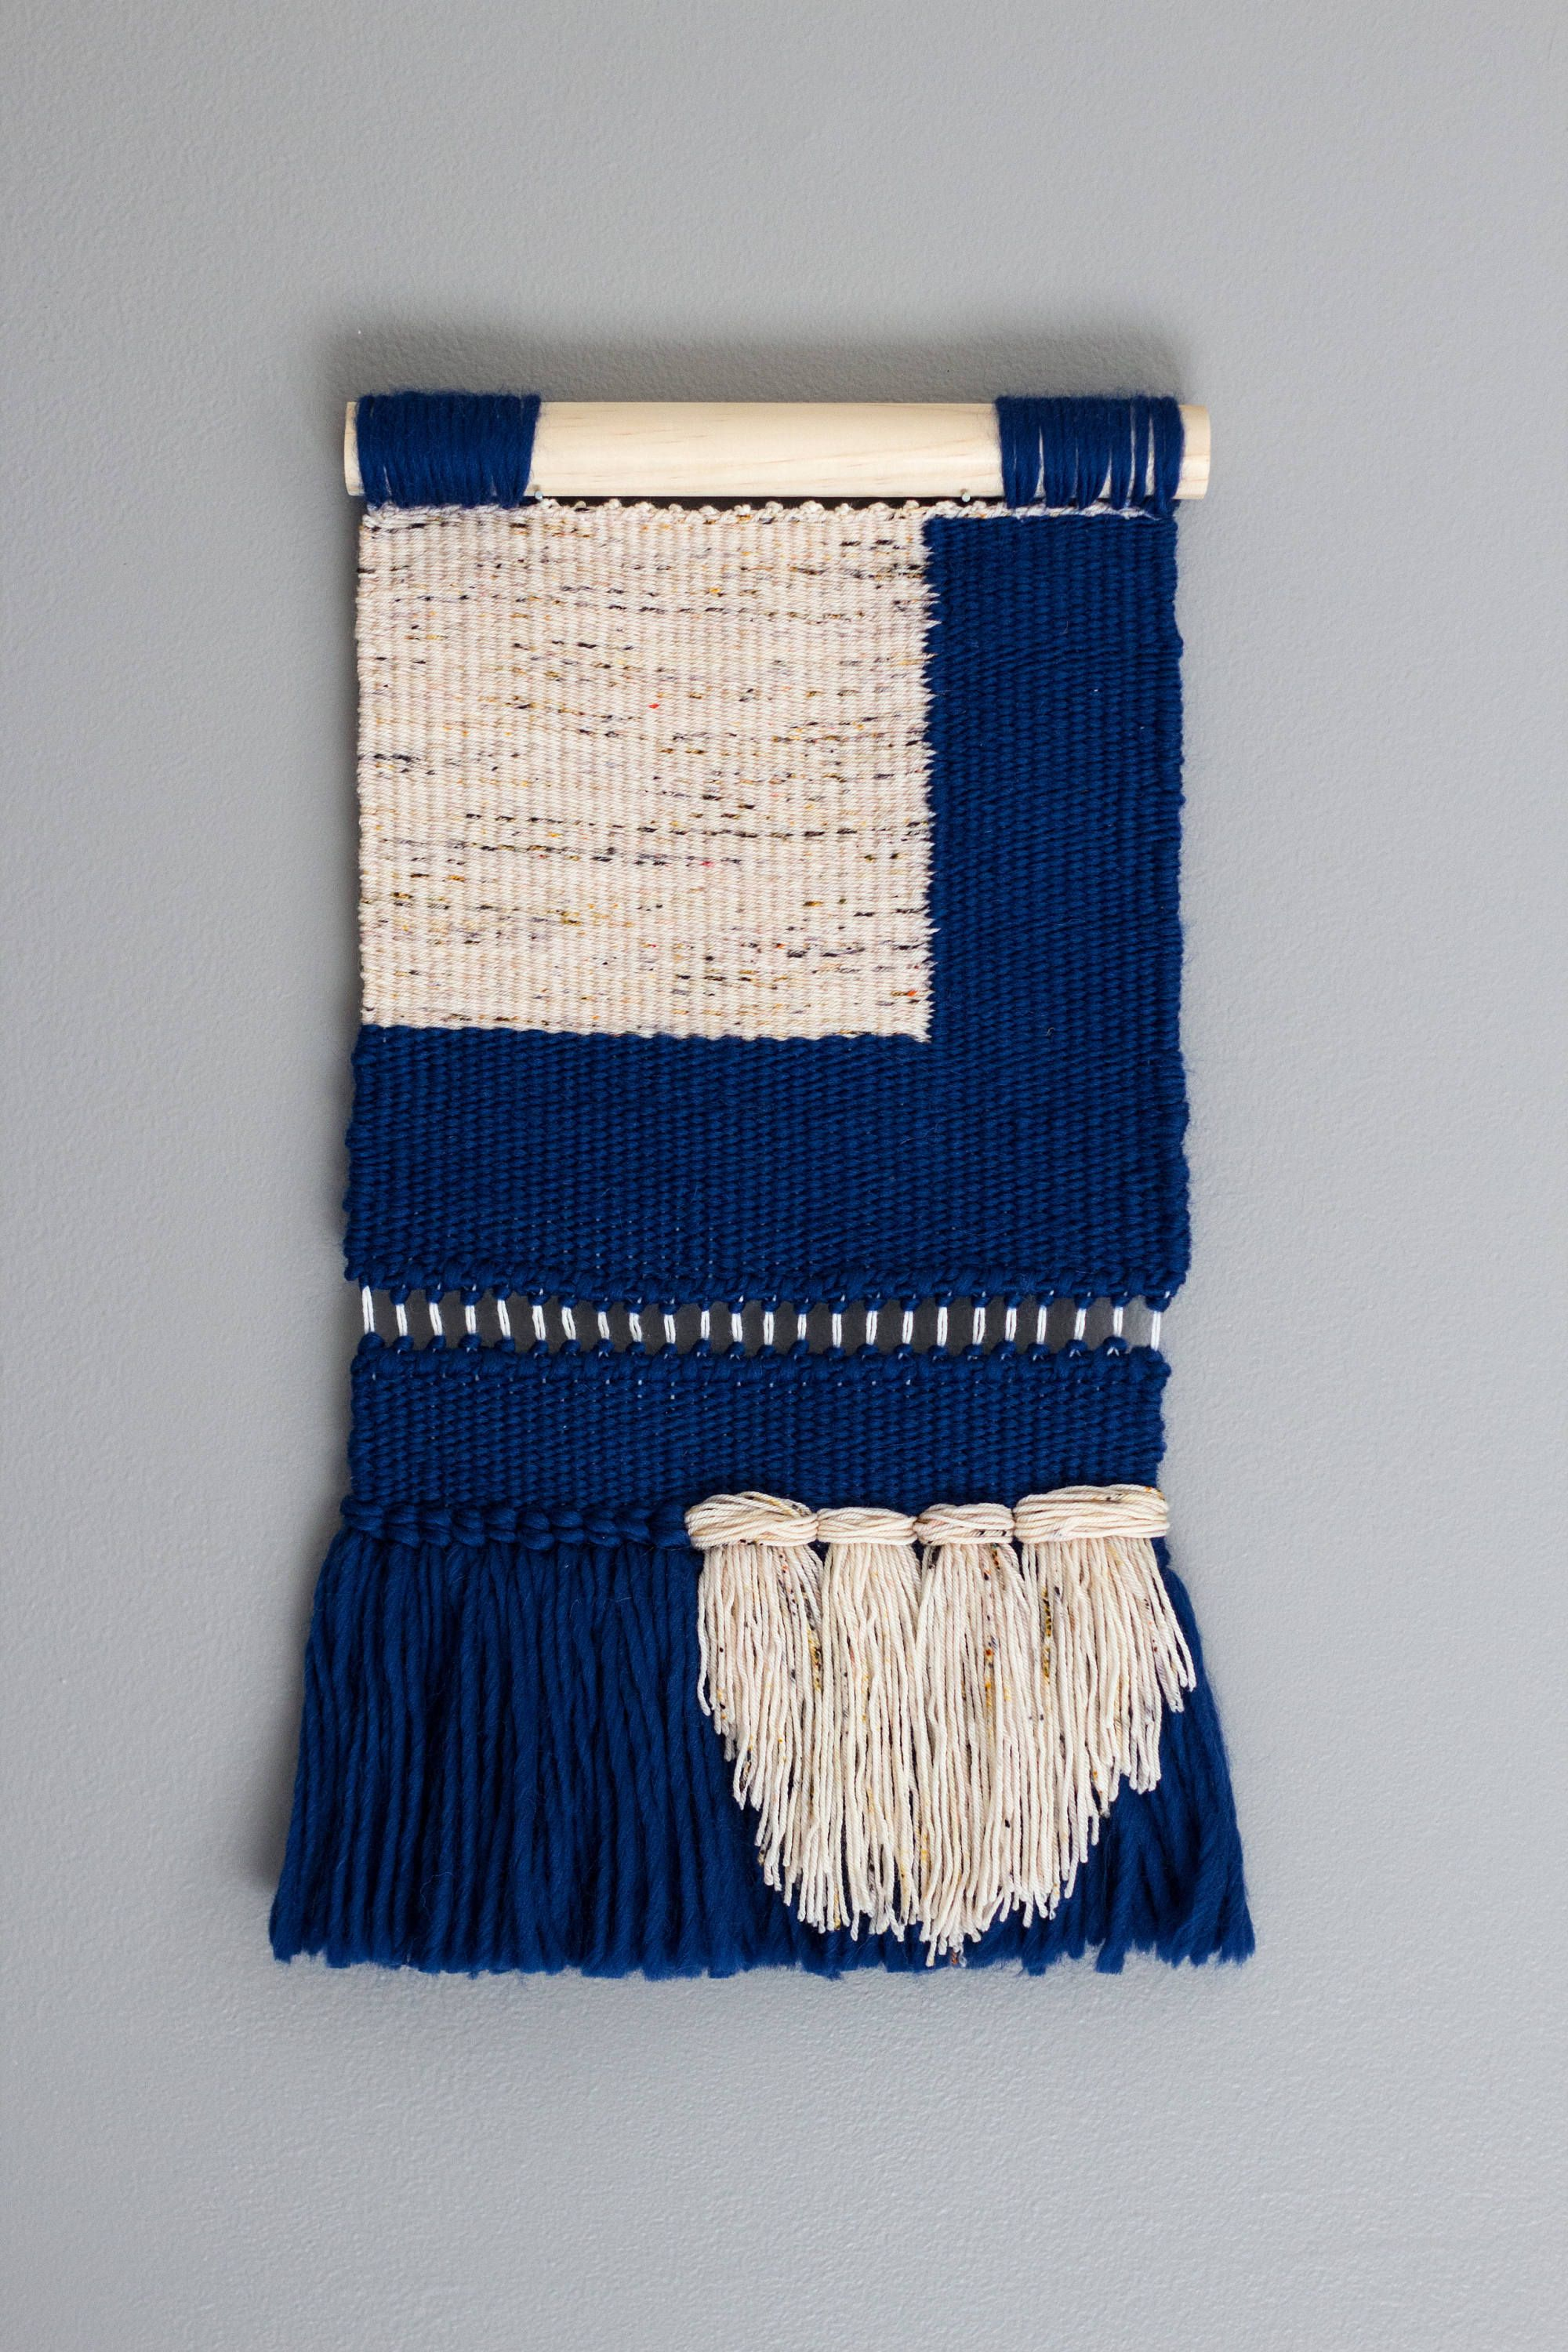 Woven Wall Hanging Modern Tapestry Blue Color Block Tapestry Woven Wall Hanging Modern Tapestries Hand Weaving